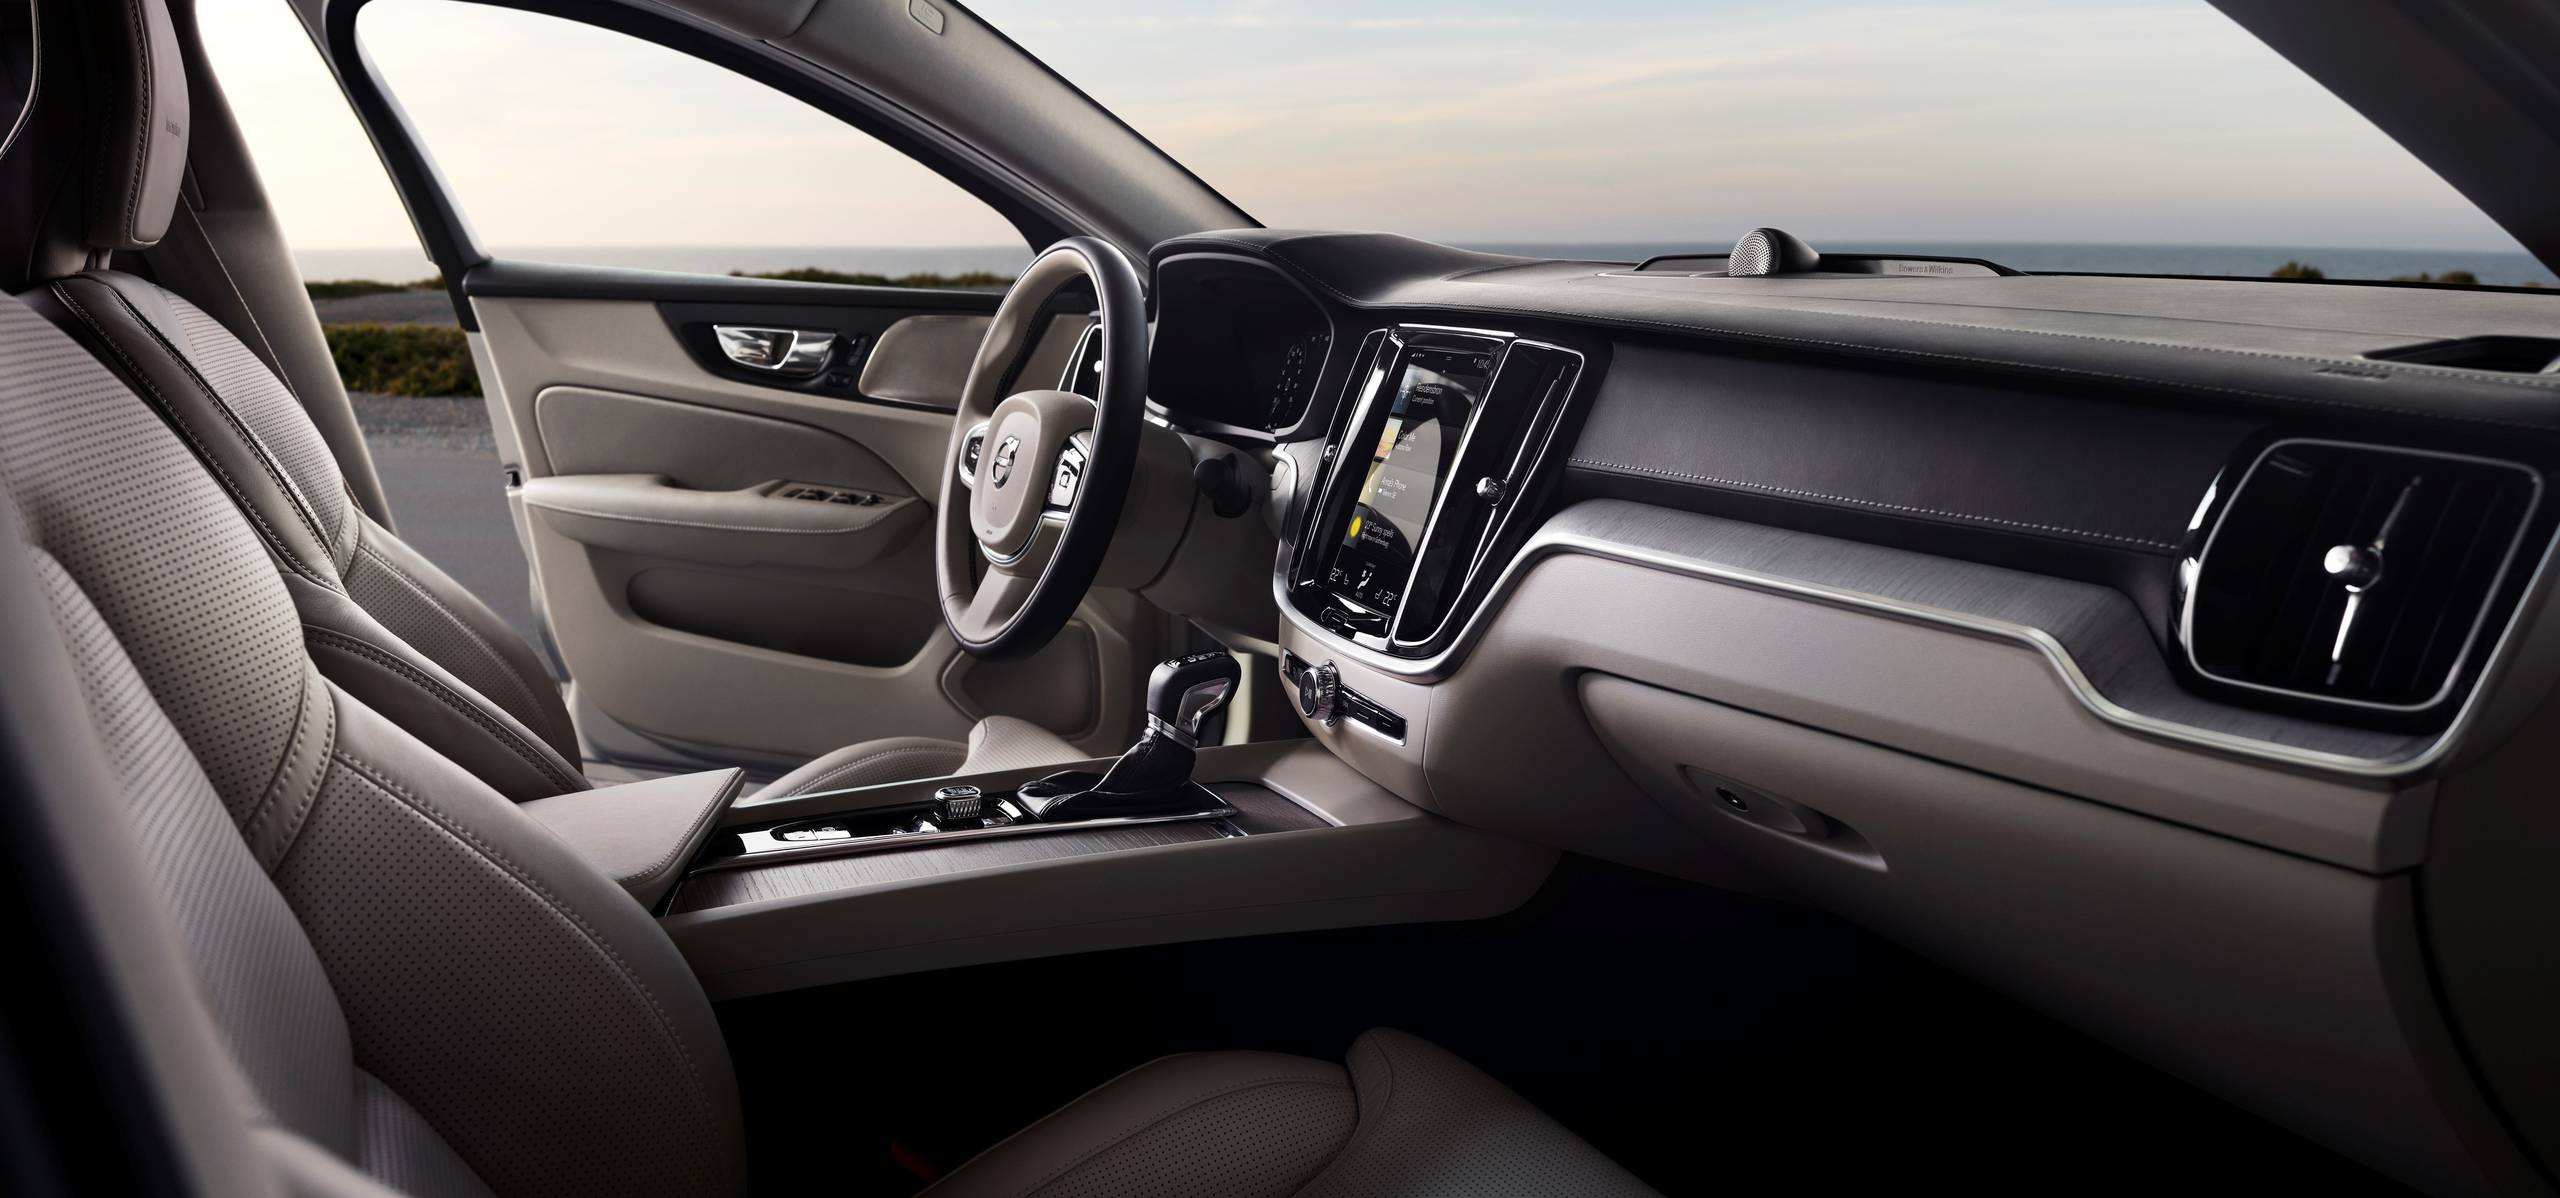 69 A 2019 Volvo 780 Interior Performance